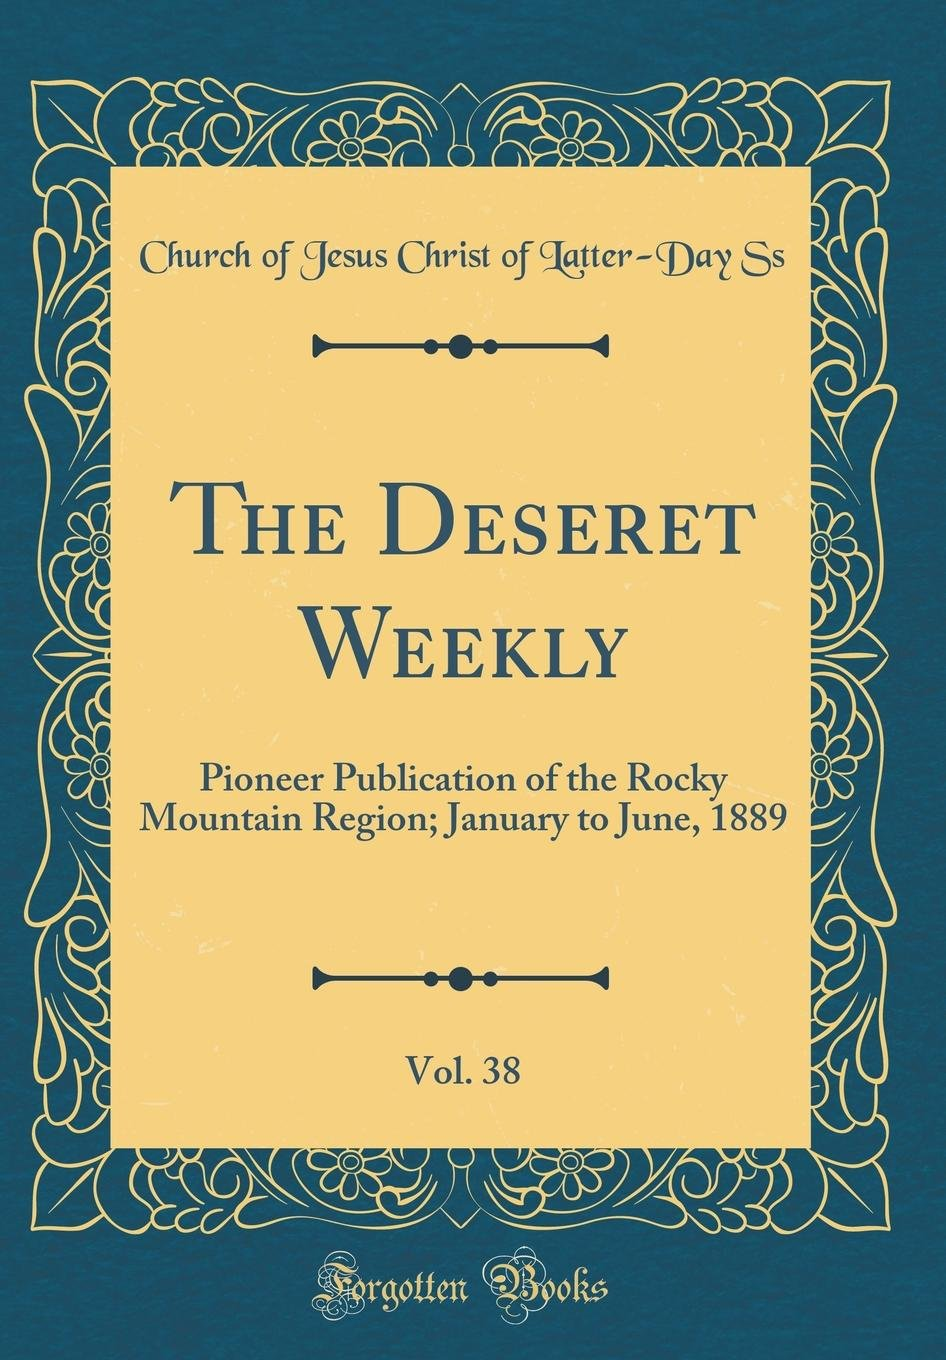 The Deseret Weekly, Vol. 38: Pioneer Publication of the Rocky Mountain Region; January to June, 1889 (Classic Reprint) pdf